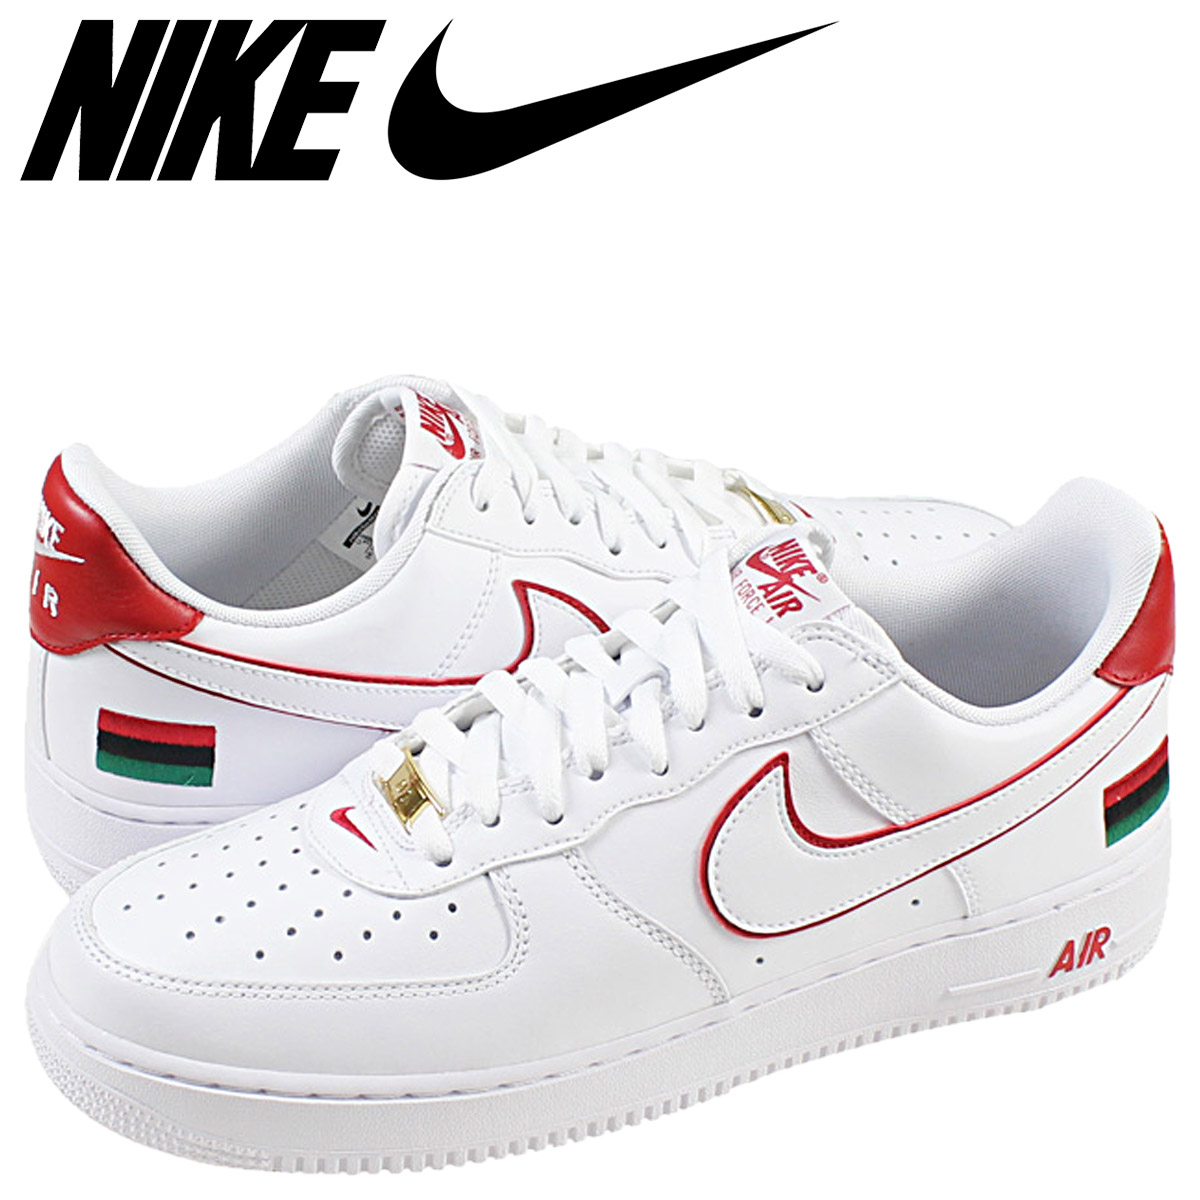 Buy nike air force 1 retro > up to 52% Discounts